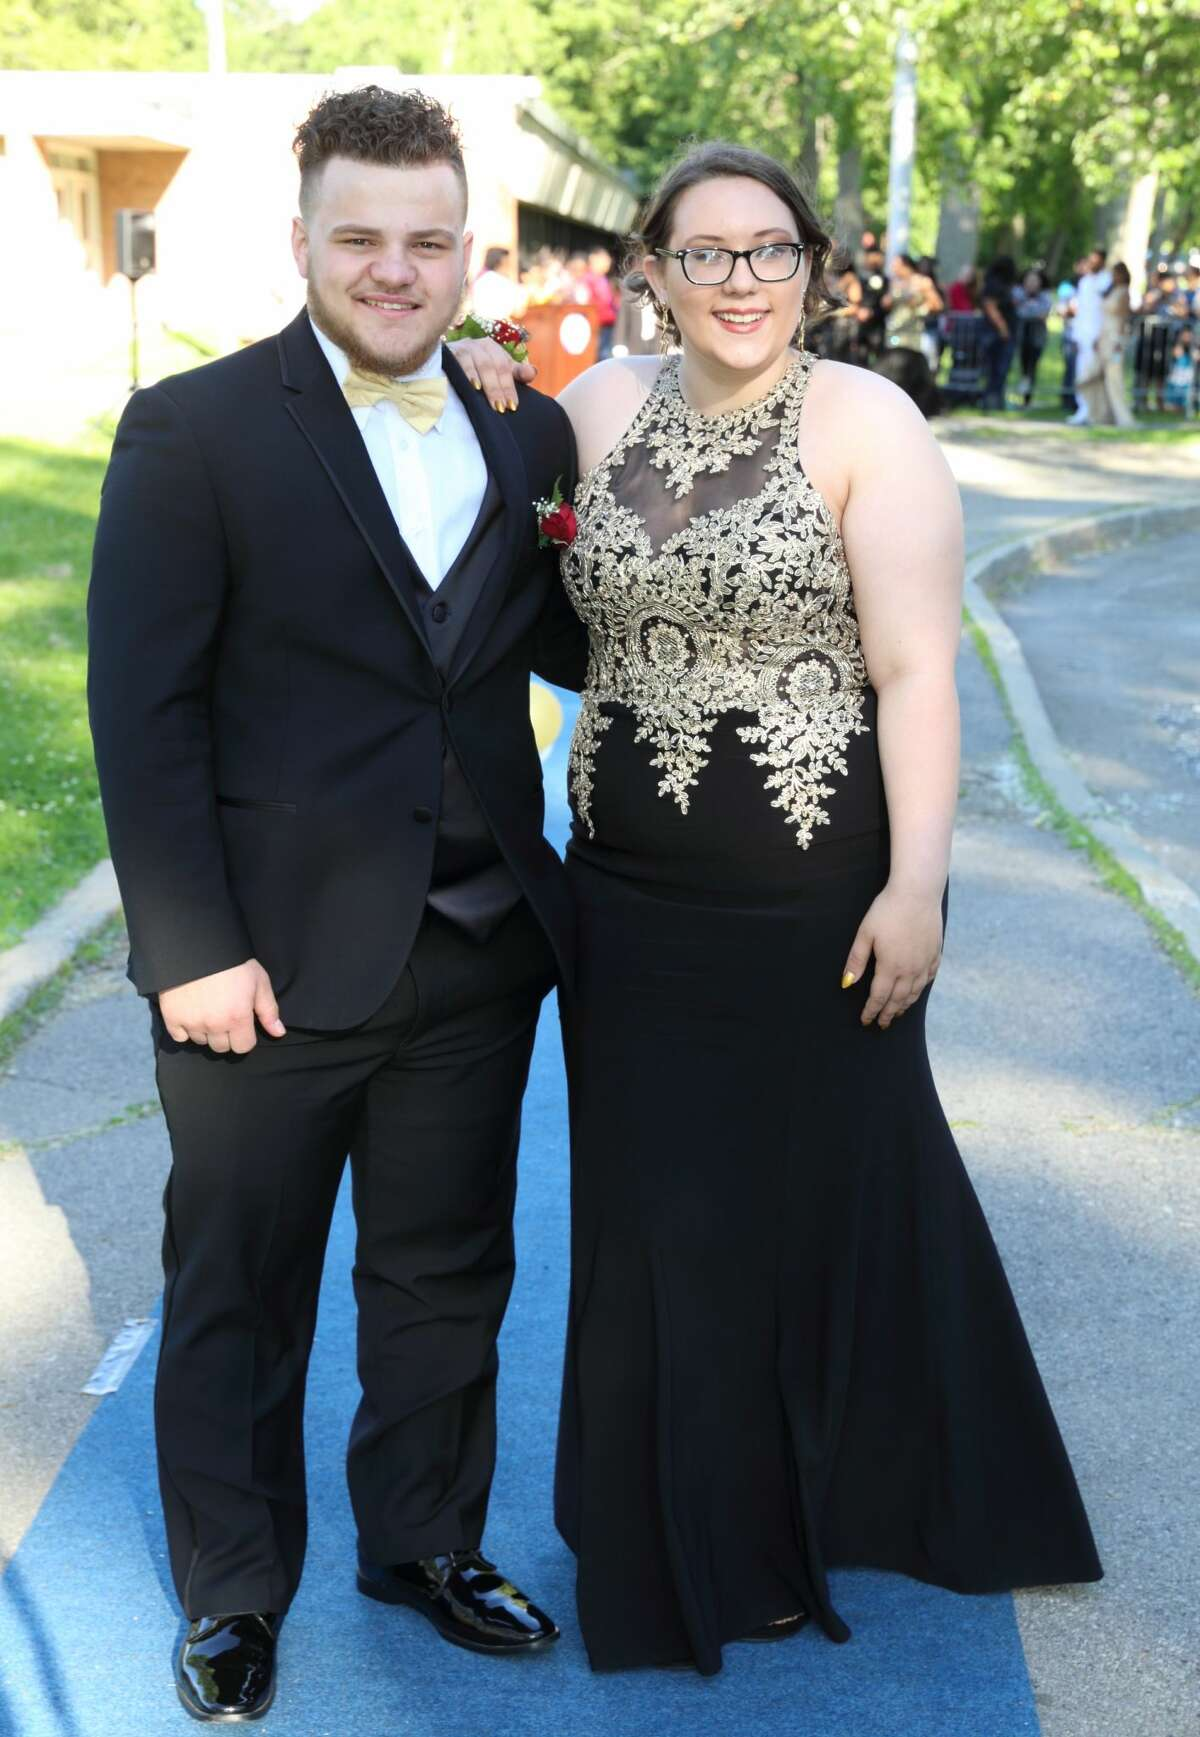 Were you Seen at the Schenectady High School Junior/Senior prom walk-in at the high school on Friday, June 9, 2017?